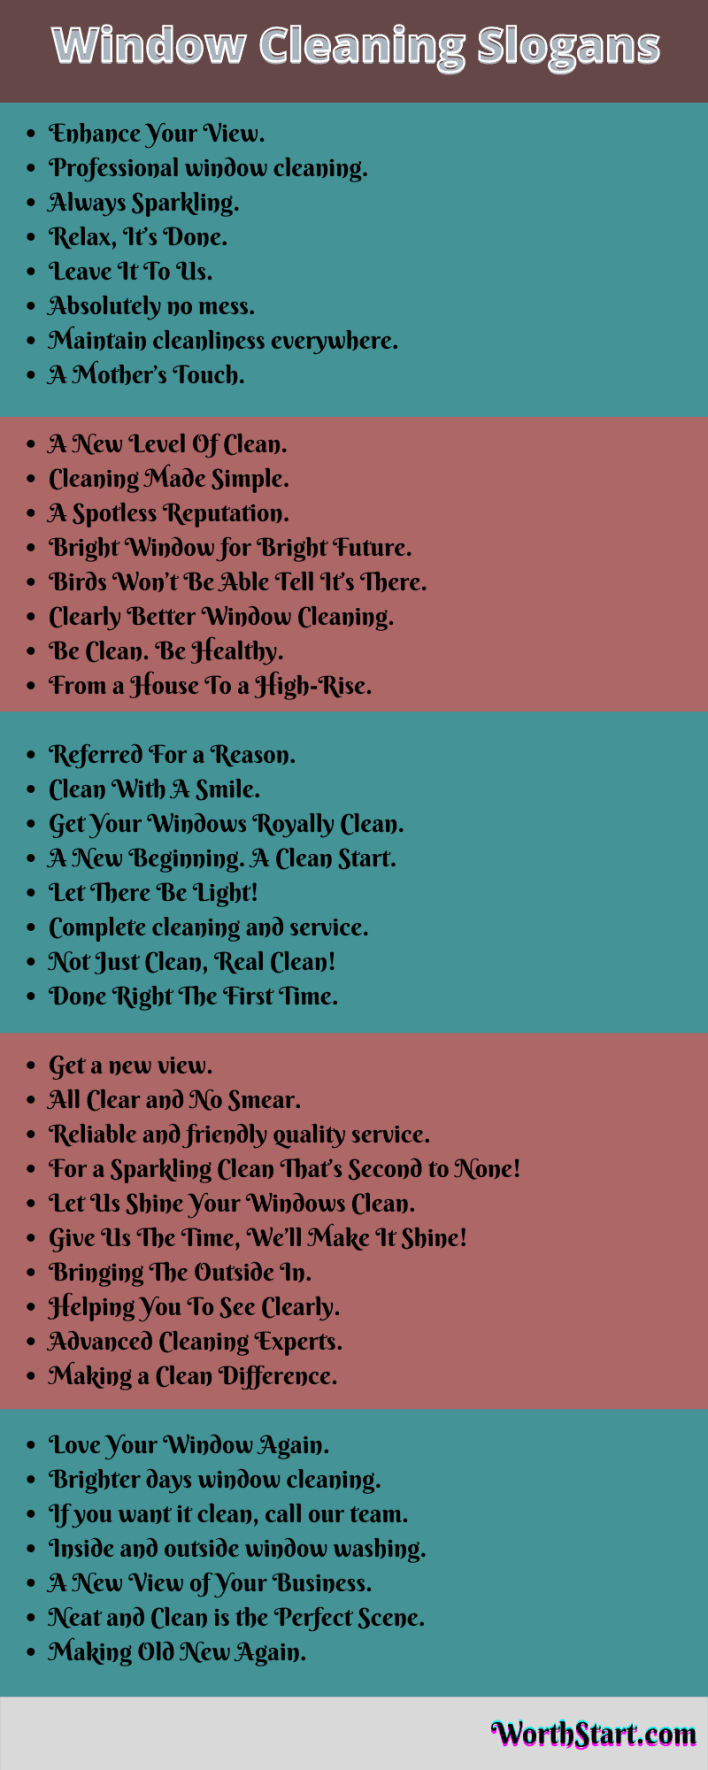 Window Cleaning Slogans